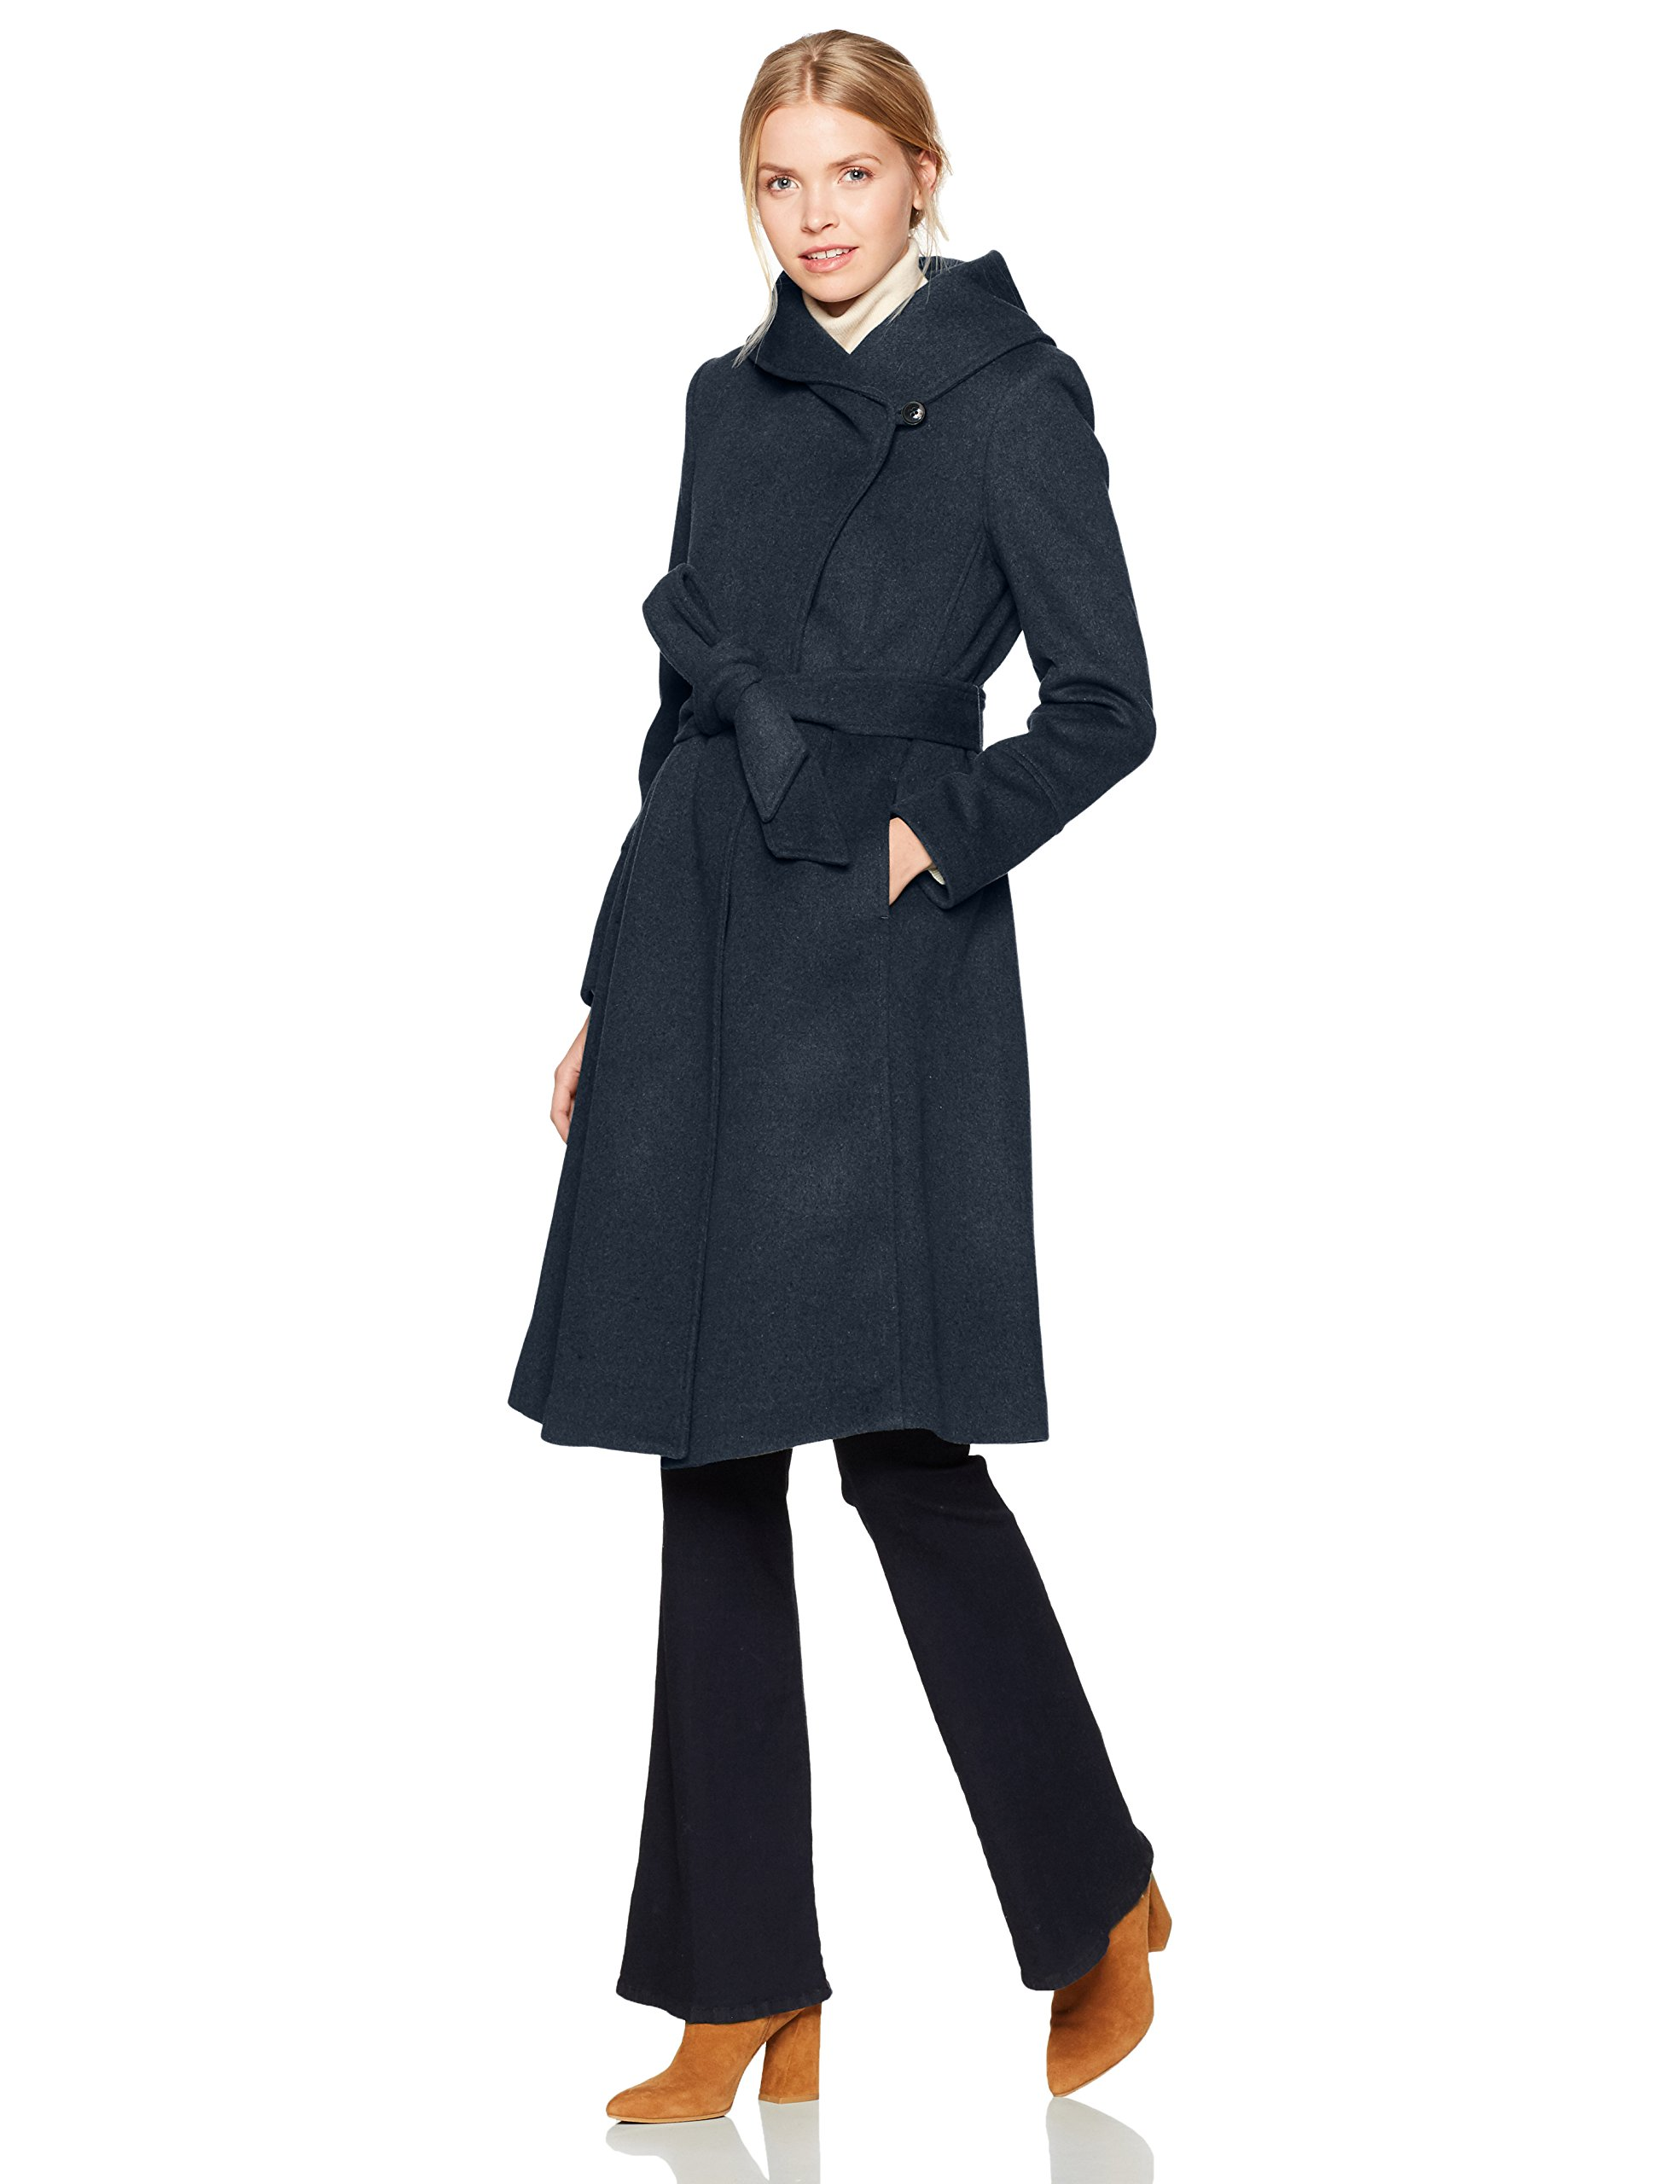 Cole Haan Women's Luxury Wool Asymmetrical Coat With Oversized Shawl Collar, Dark Navy, 6